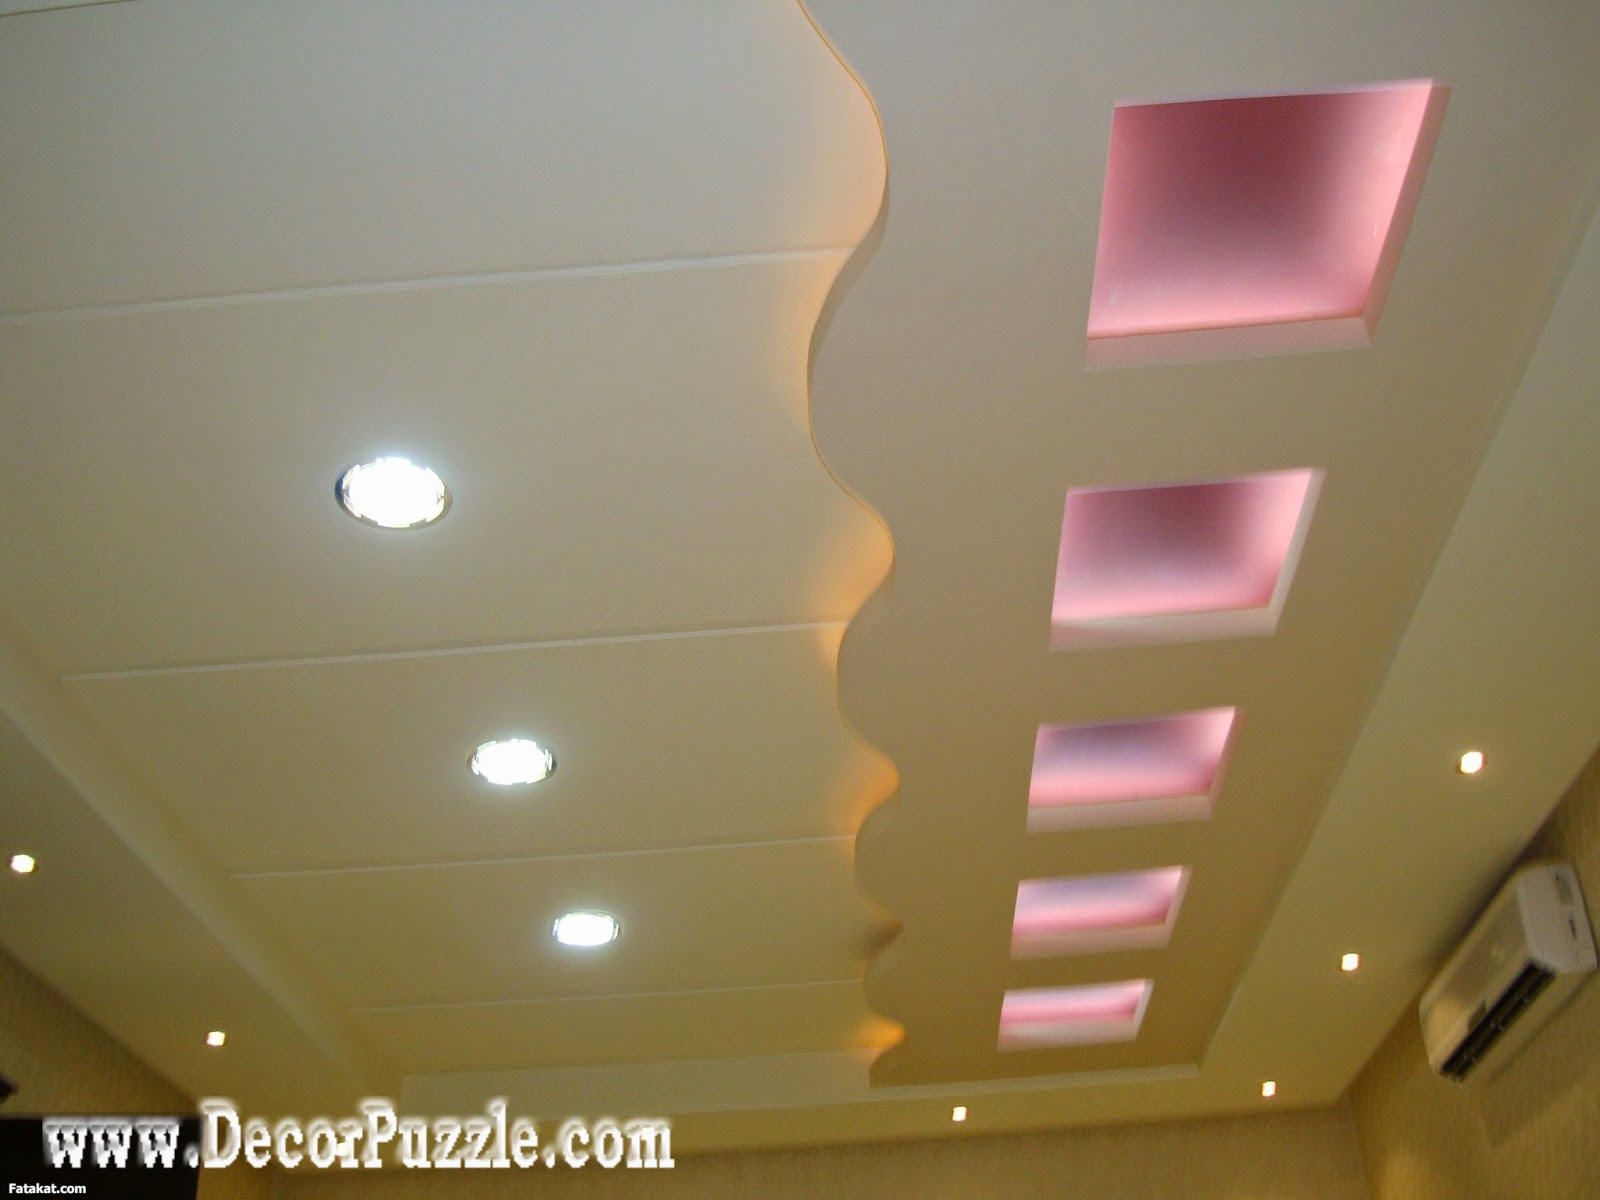 Ceiling Designs Latest 20 Pop False Ceiling Design Catalogue With Led 2017